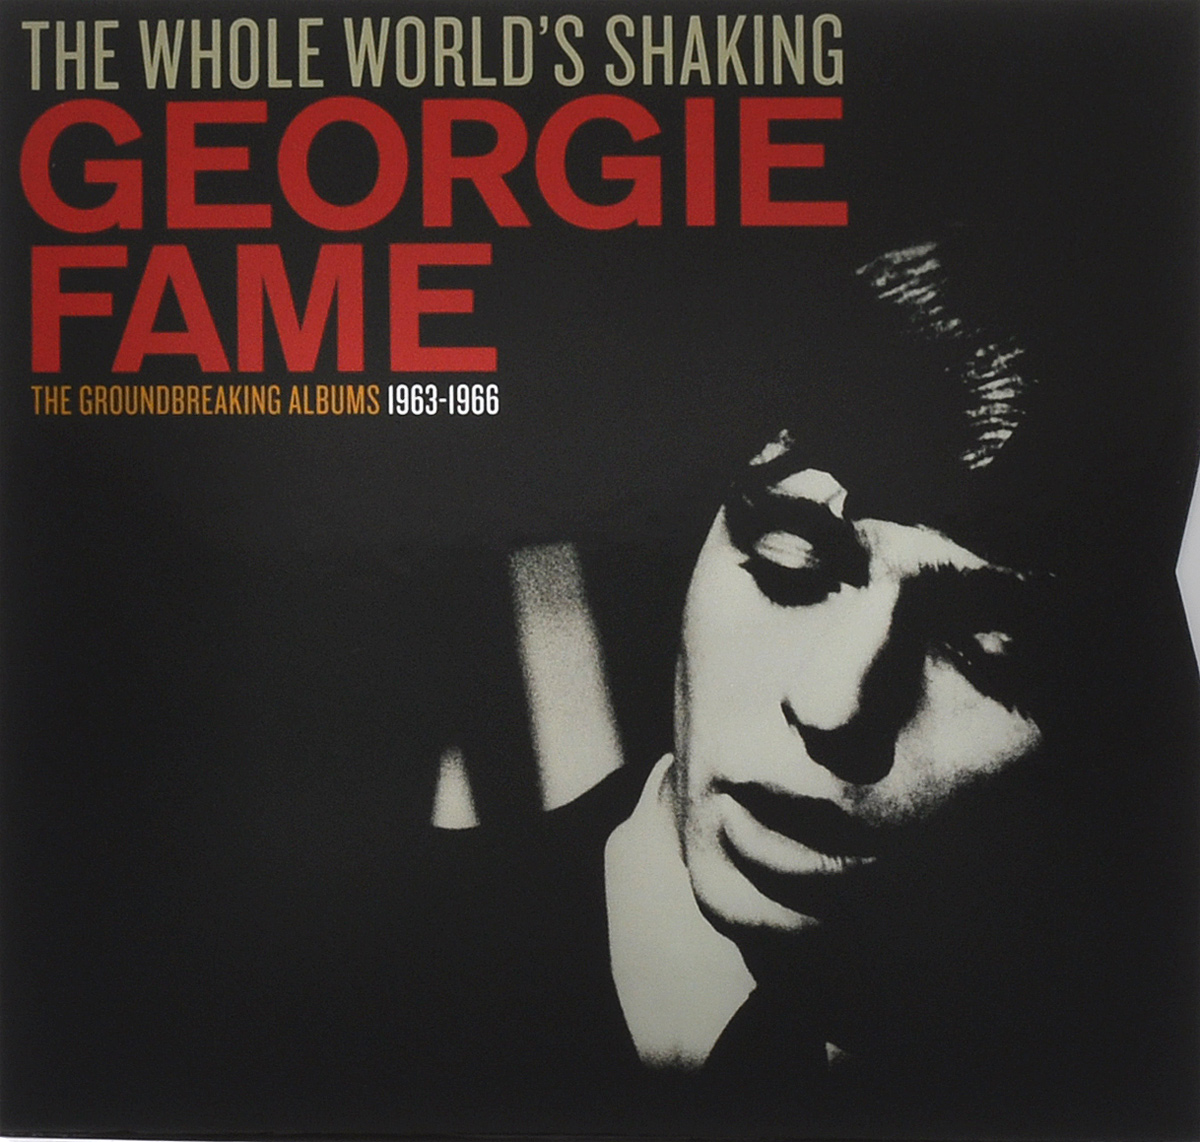 Джорджи Фэйм Georgie Fame. The Whole World's Shaking. The Groundbreaking Albums 1963-1966 (4 LP) mvpower 3 5mm stereo headphone wired gaming headset with mic microphone earphones for sony ps4 computer smartphone hifi earphone